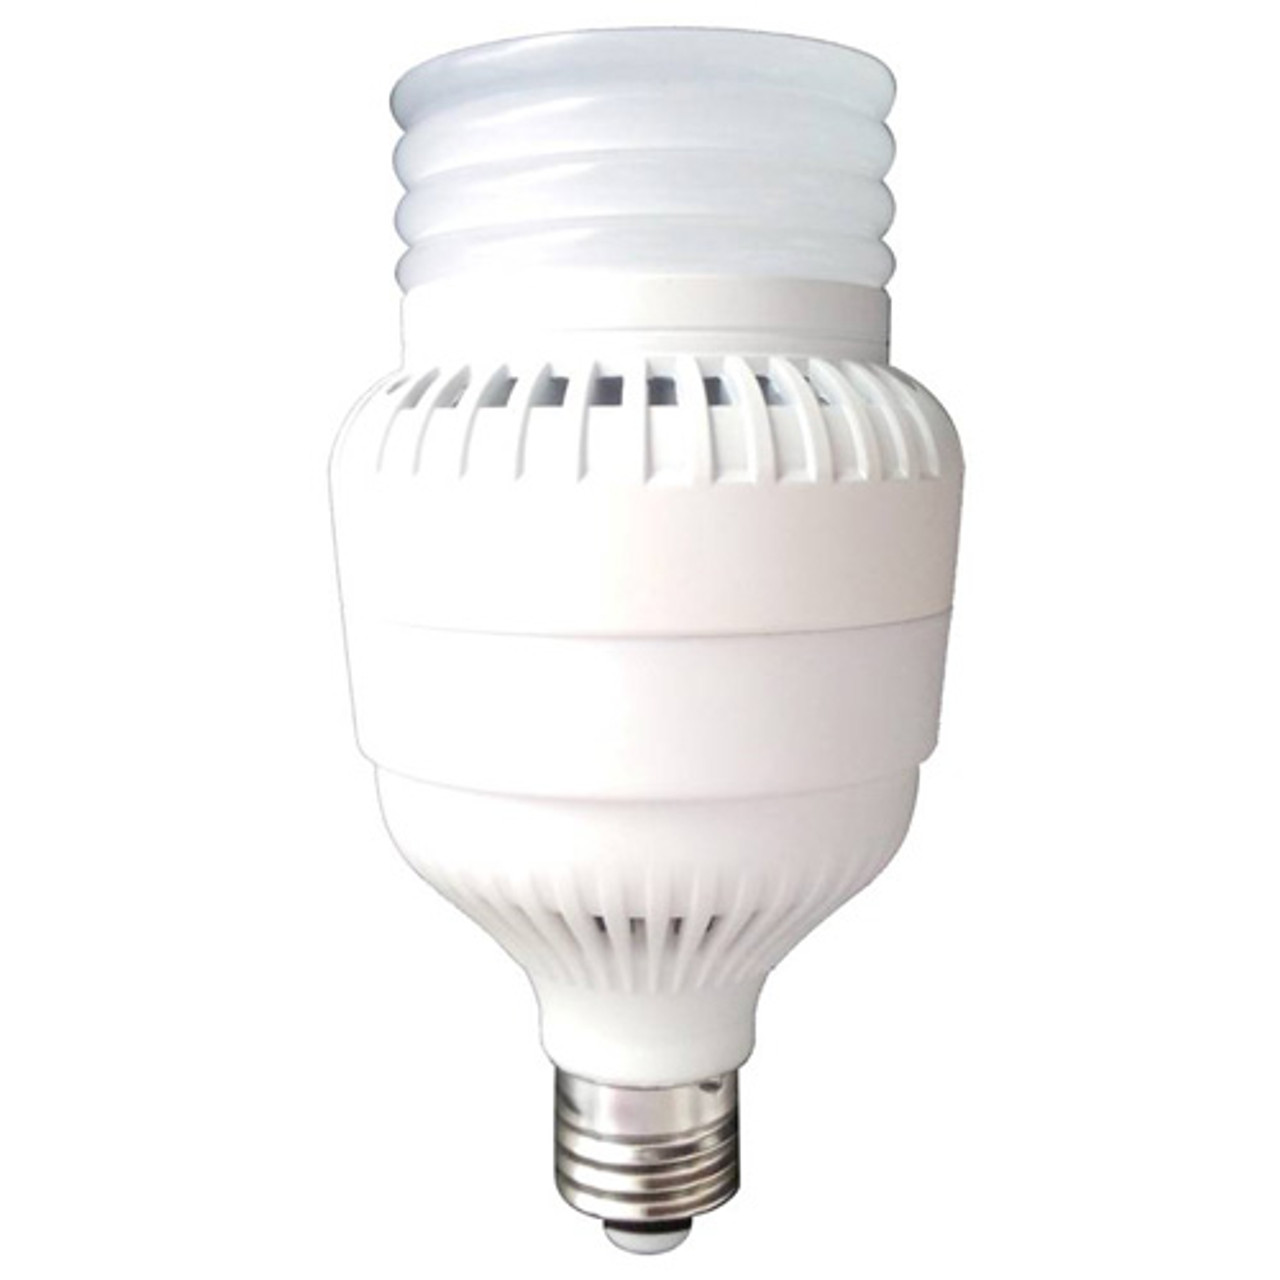 50w LED Light Bulb